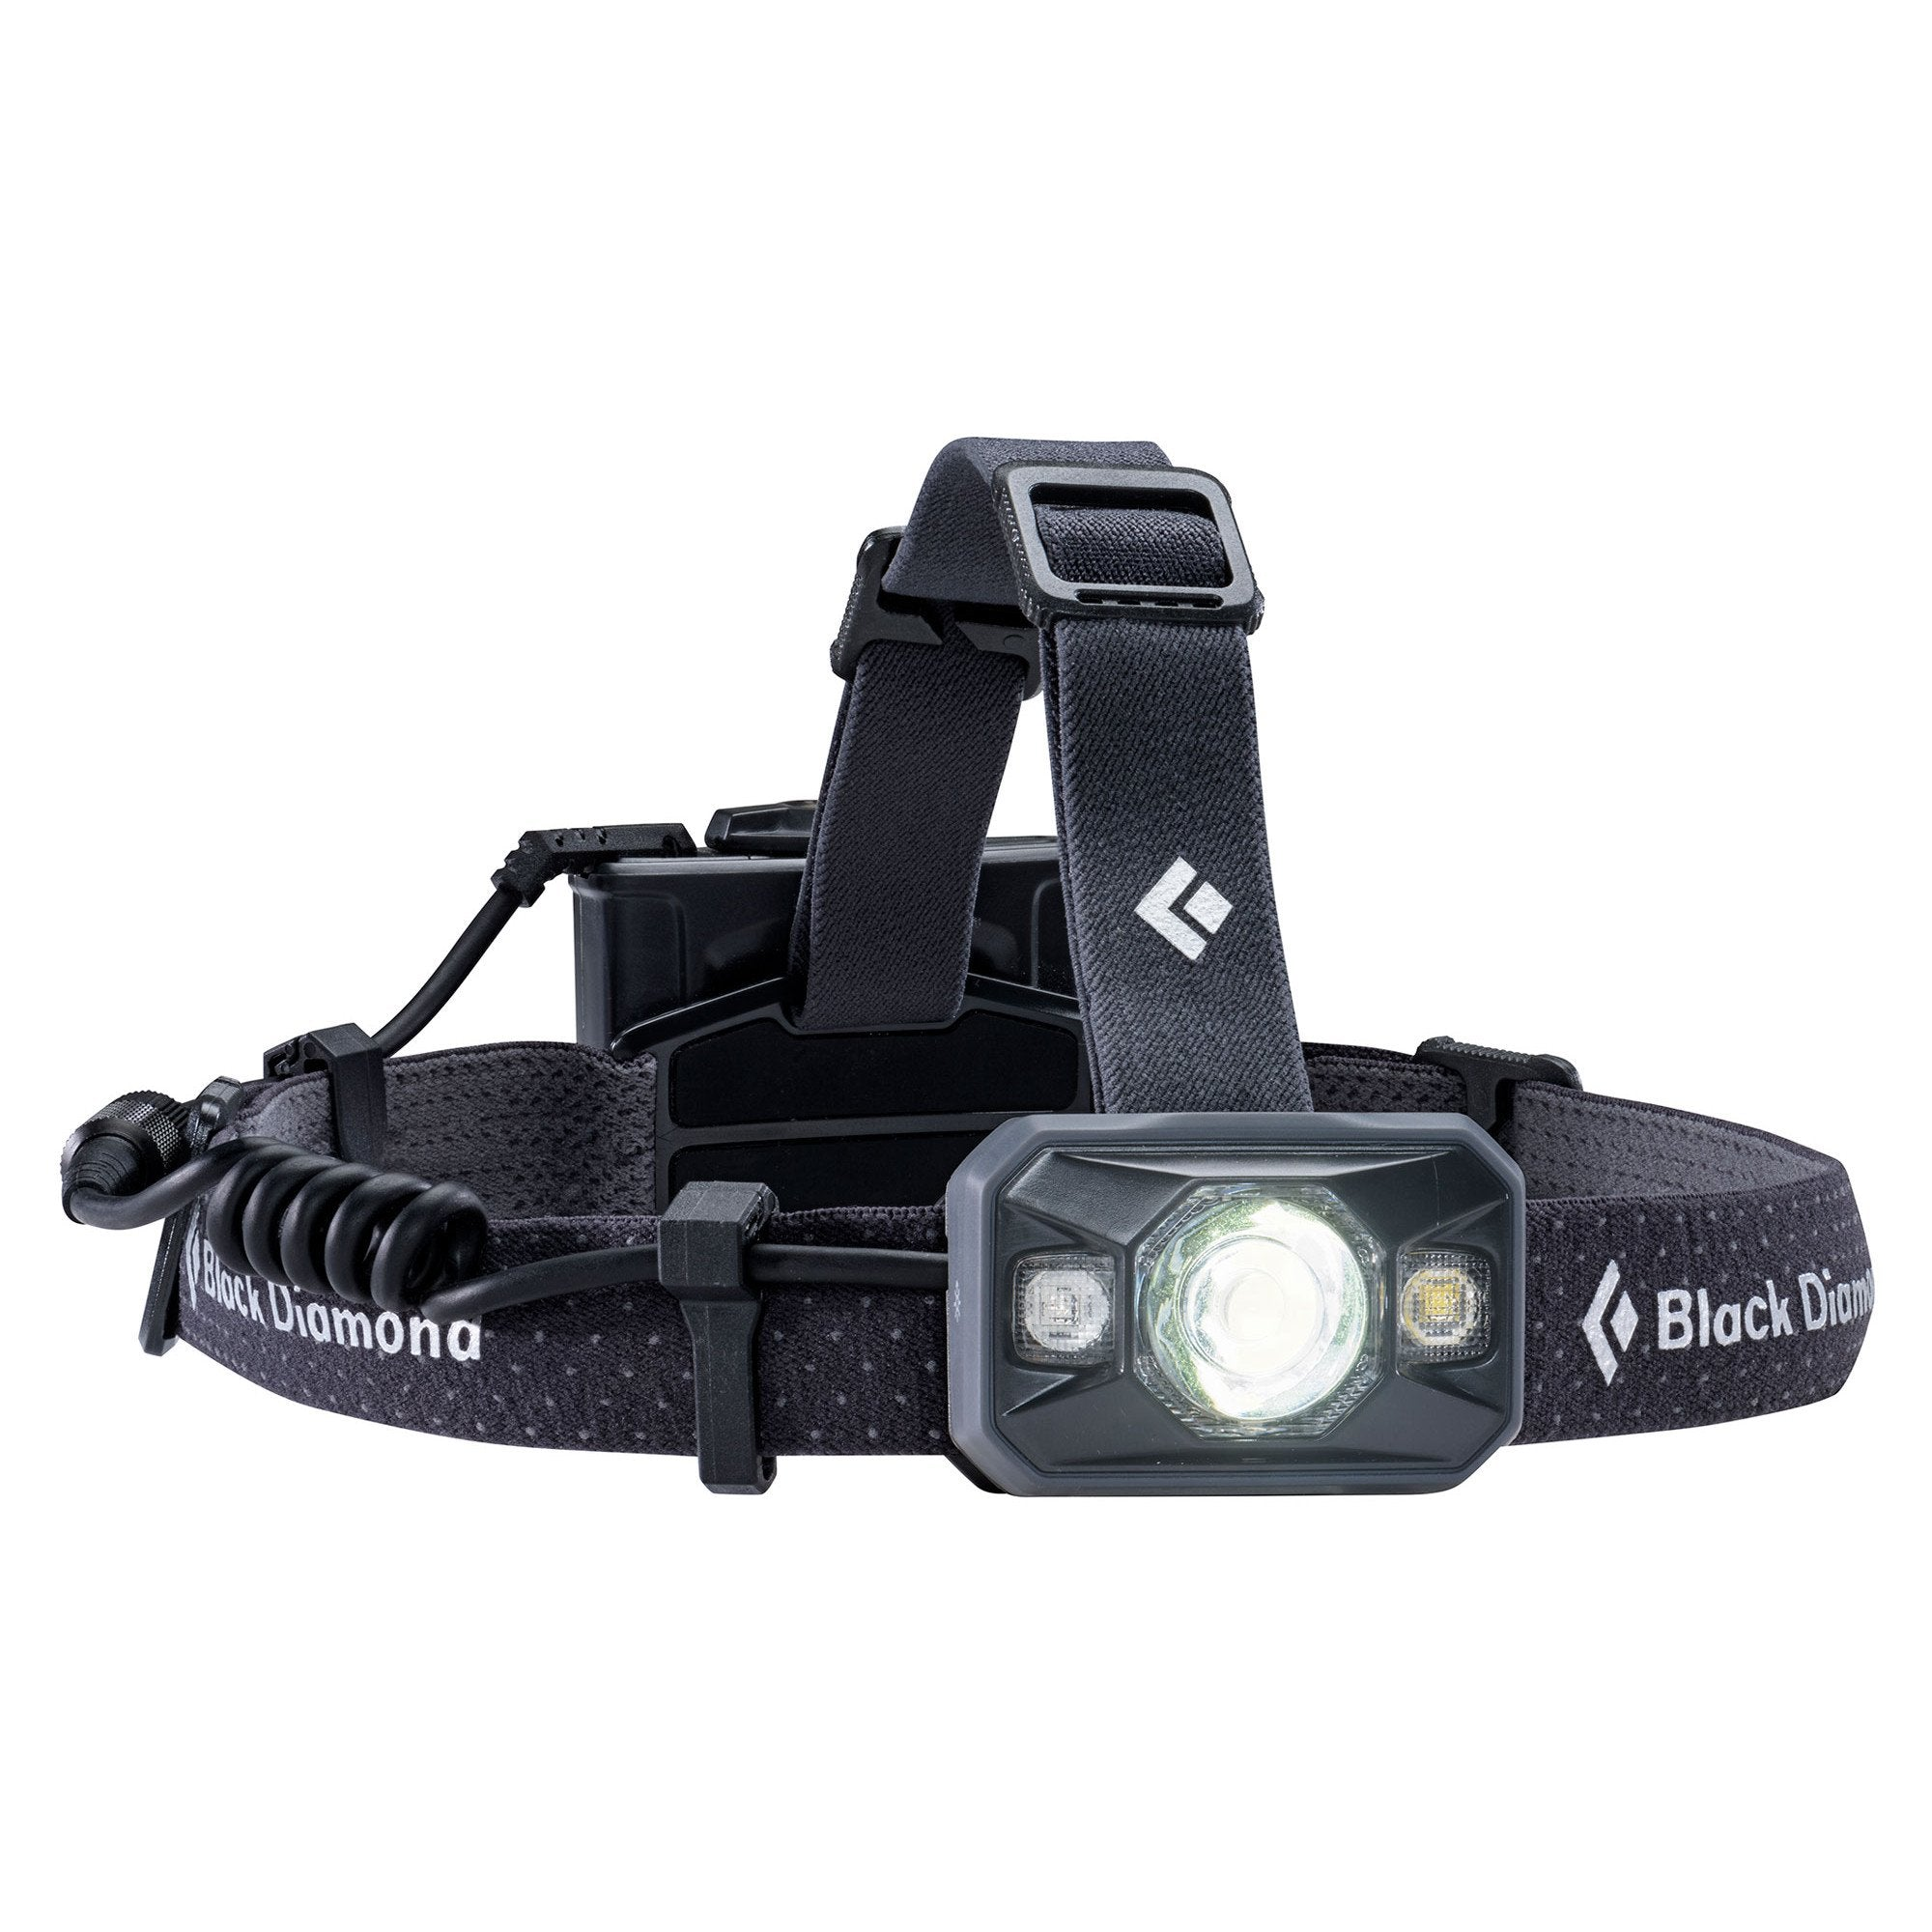 Black Diamond Icon headlamp, in black colour